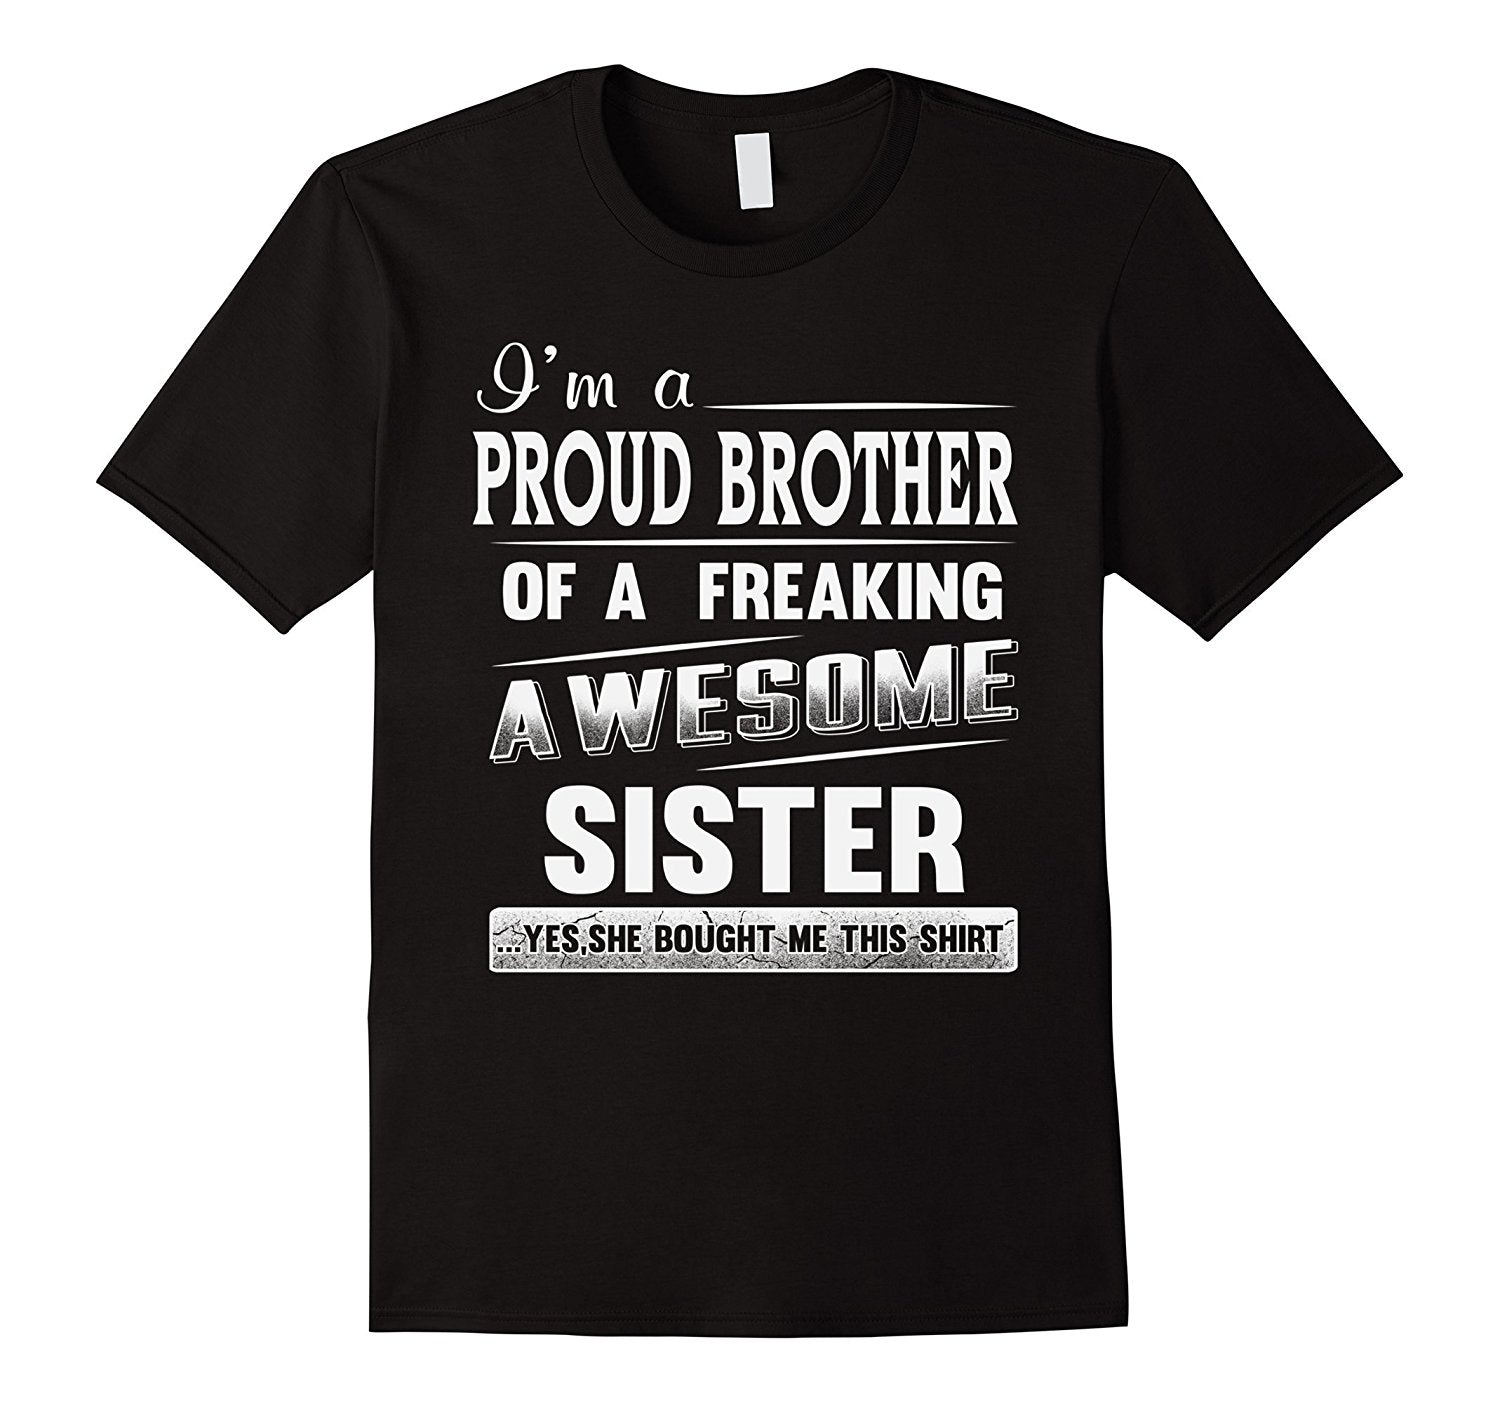 I'm A Proud Brother of A Freaking Awesome Sister... Yes She Bought Me This Shirt - Siblings - Men's T-shirt - Cozzoo